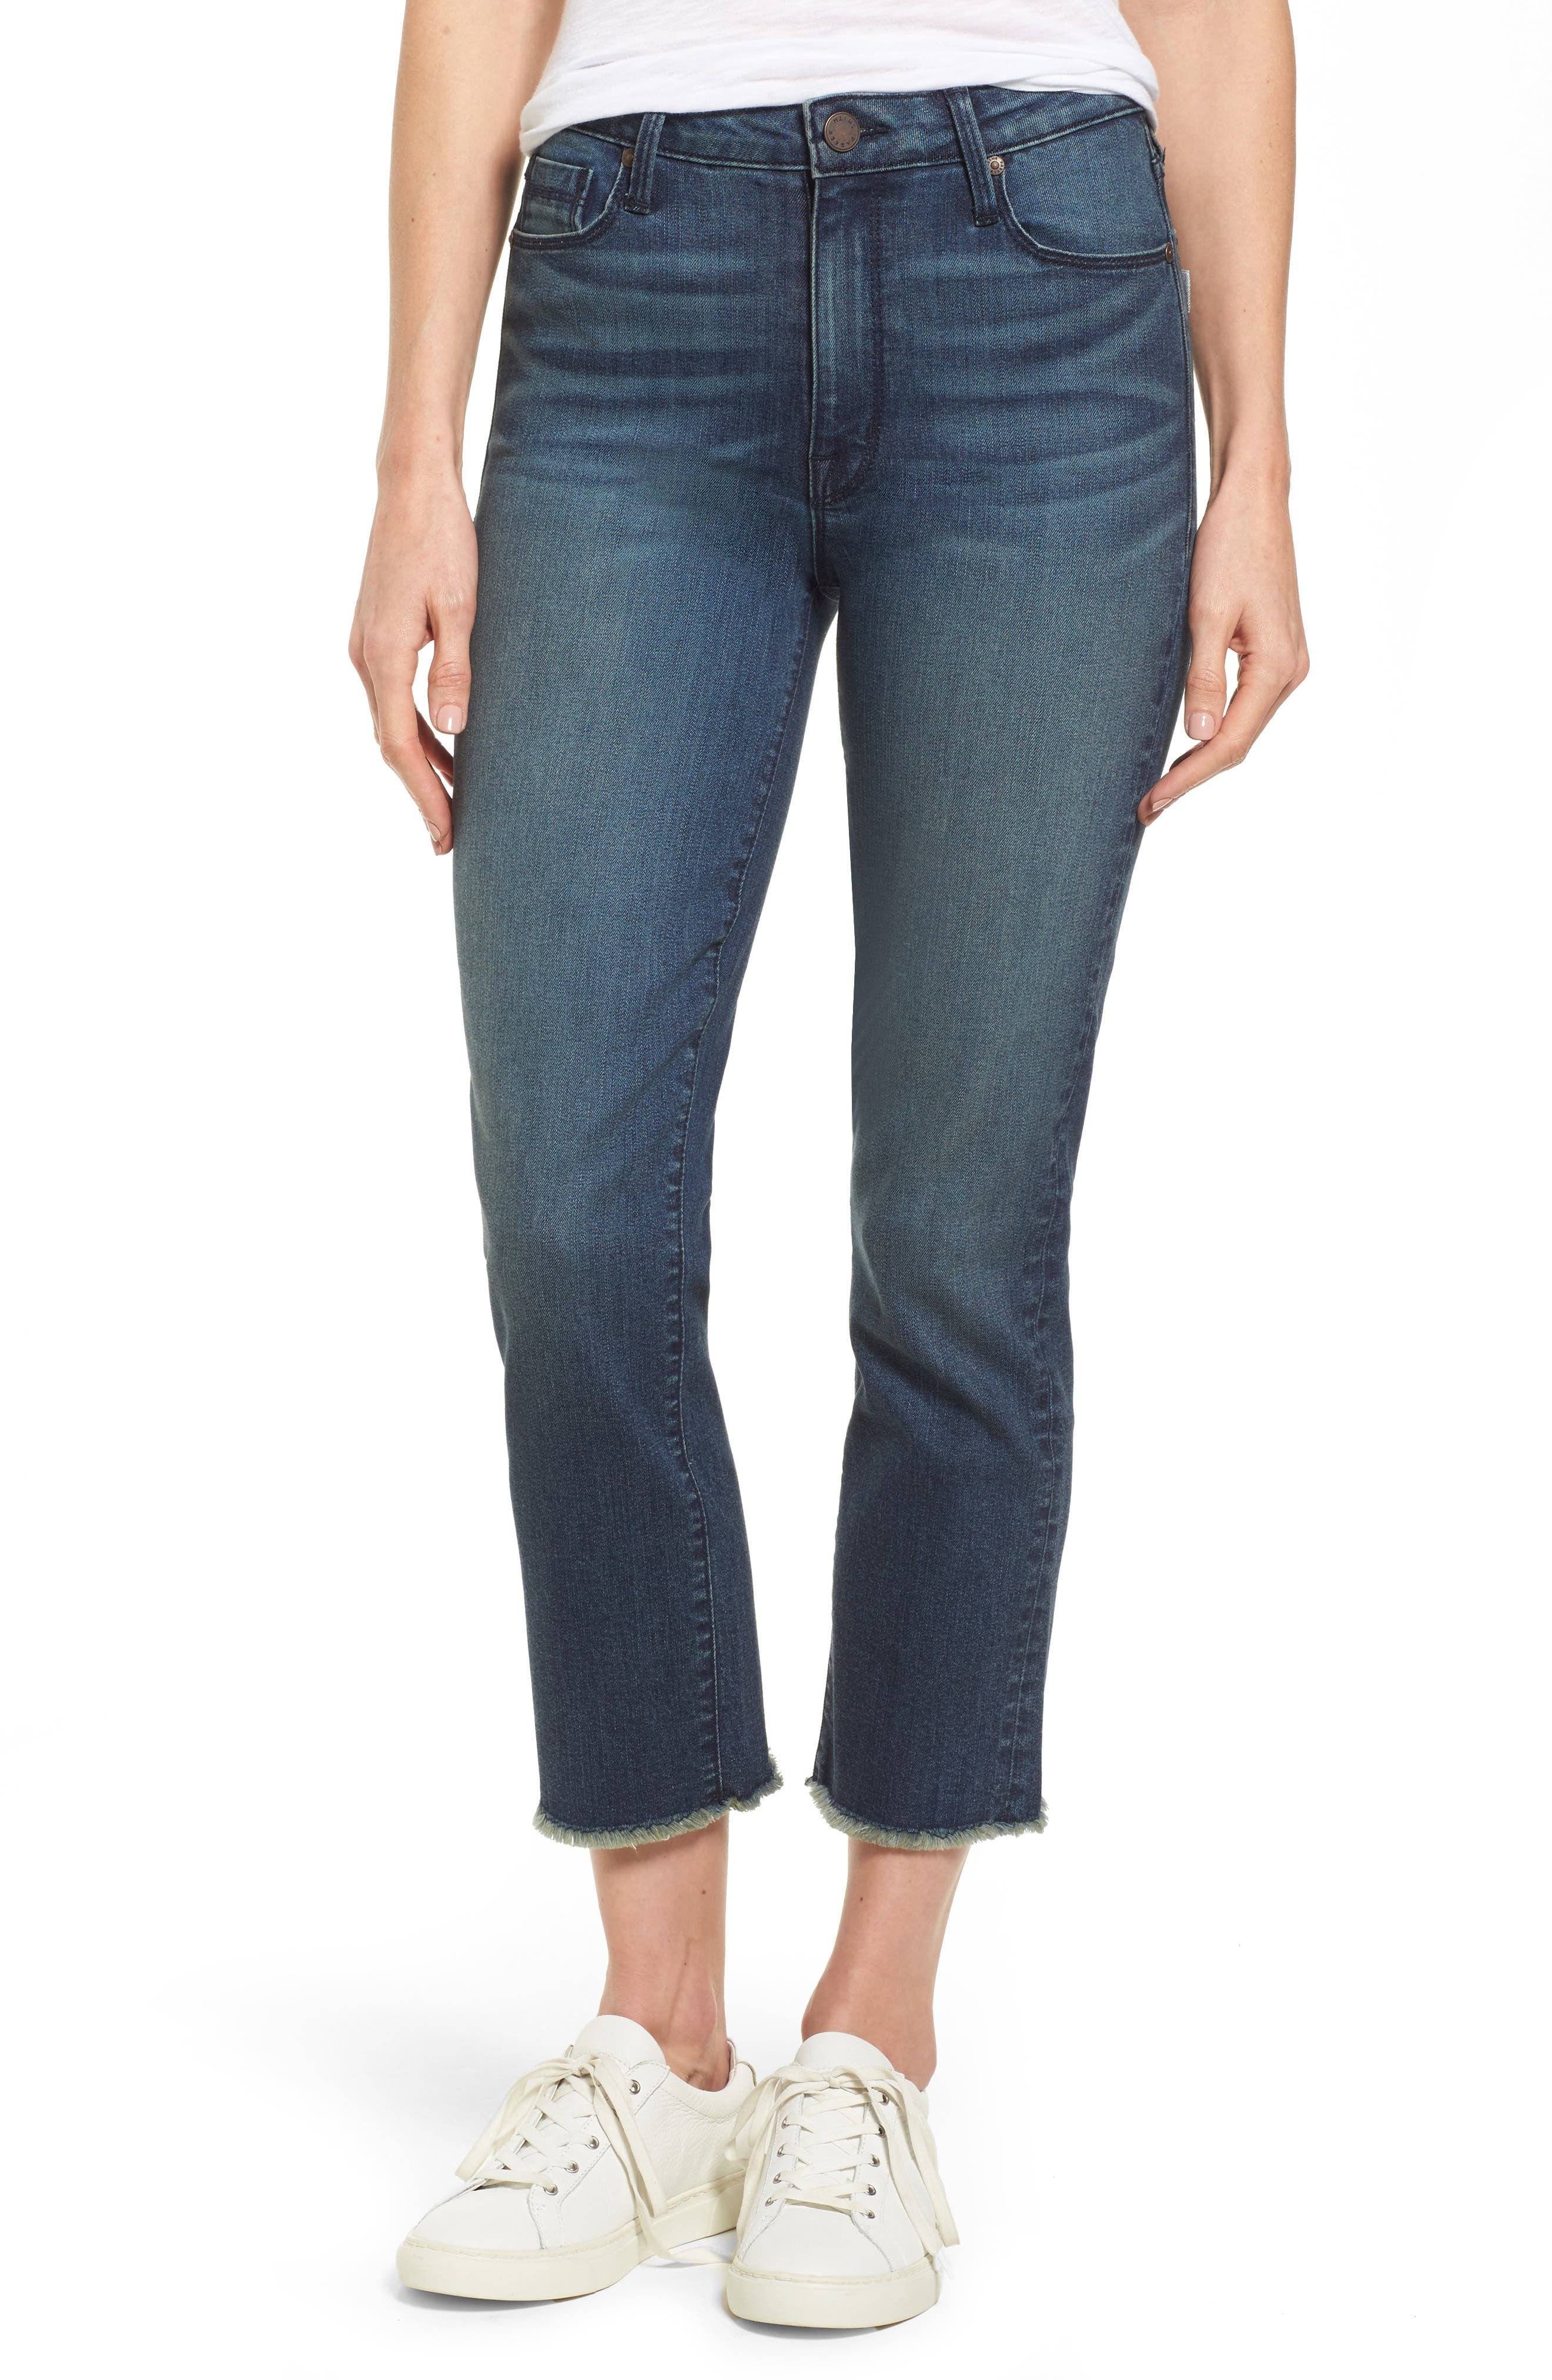 Alternate Image 1 Selected - PARKER SMITH Pin-Up Straight Crop Jeans (Ocean Boulevard)